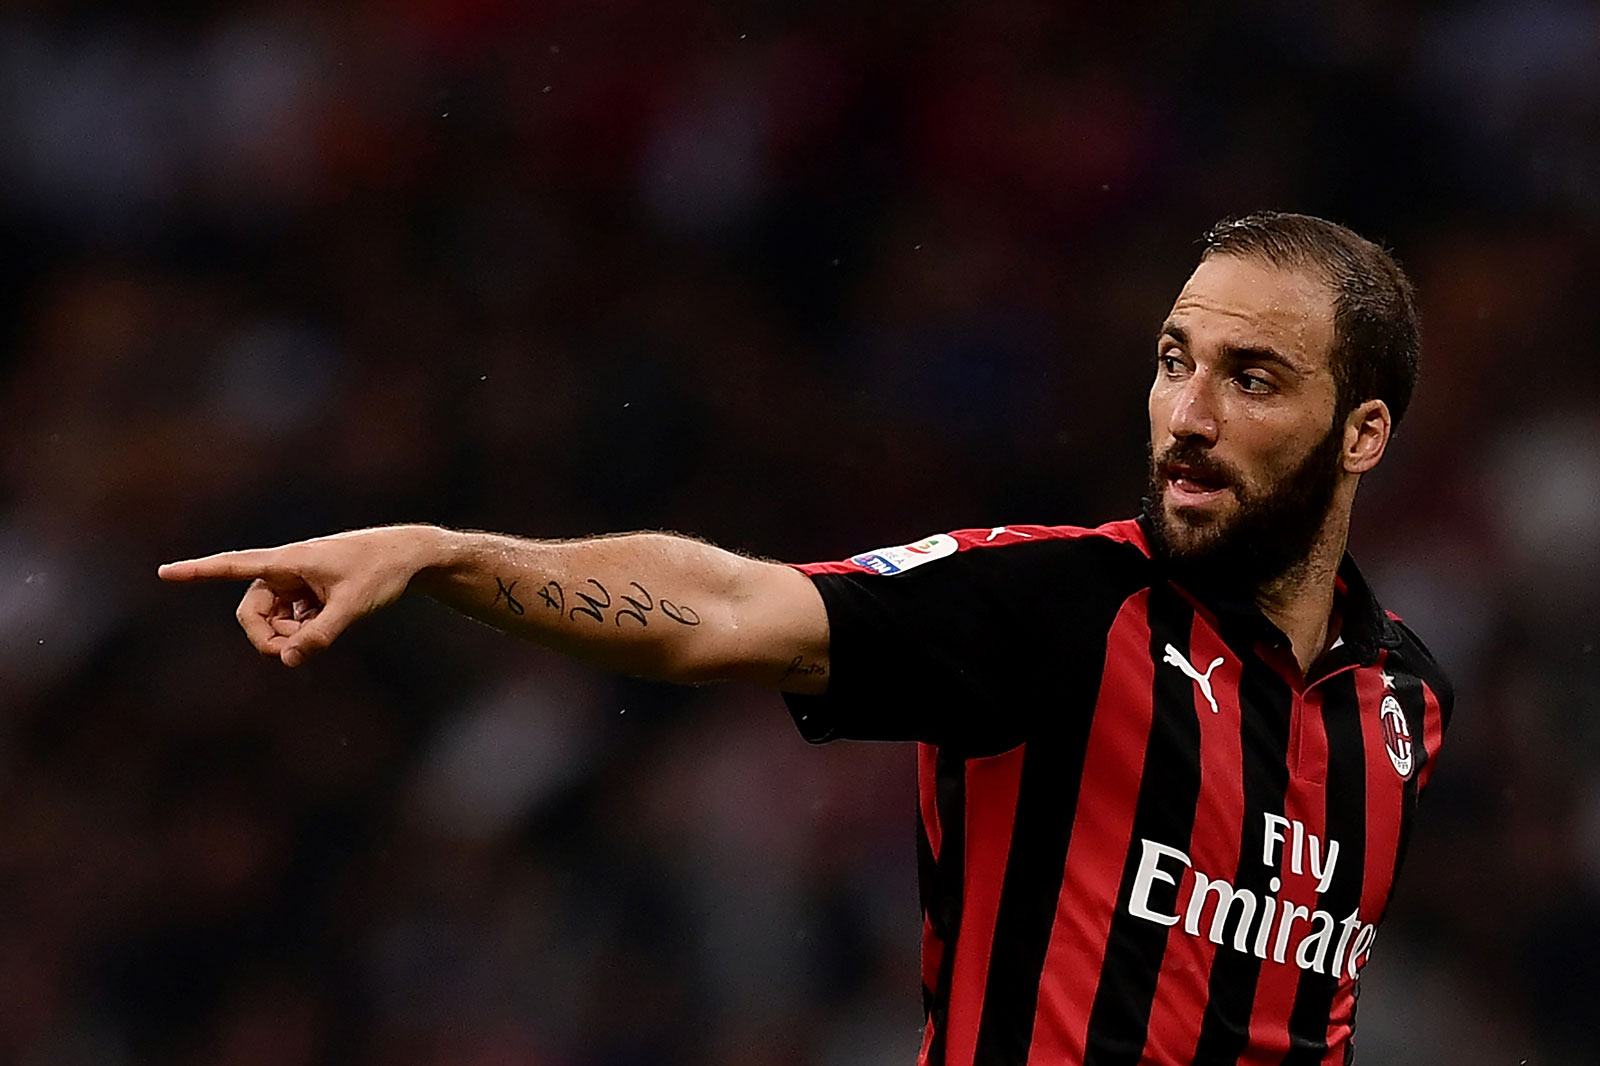 Gonzalo Higuain during Milan-Roma at Stadio San Siro on August 31, 2018. (MARCO BERTORELLO/AFP/Getty Images)